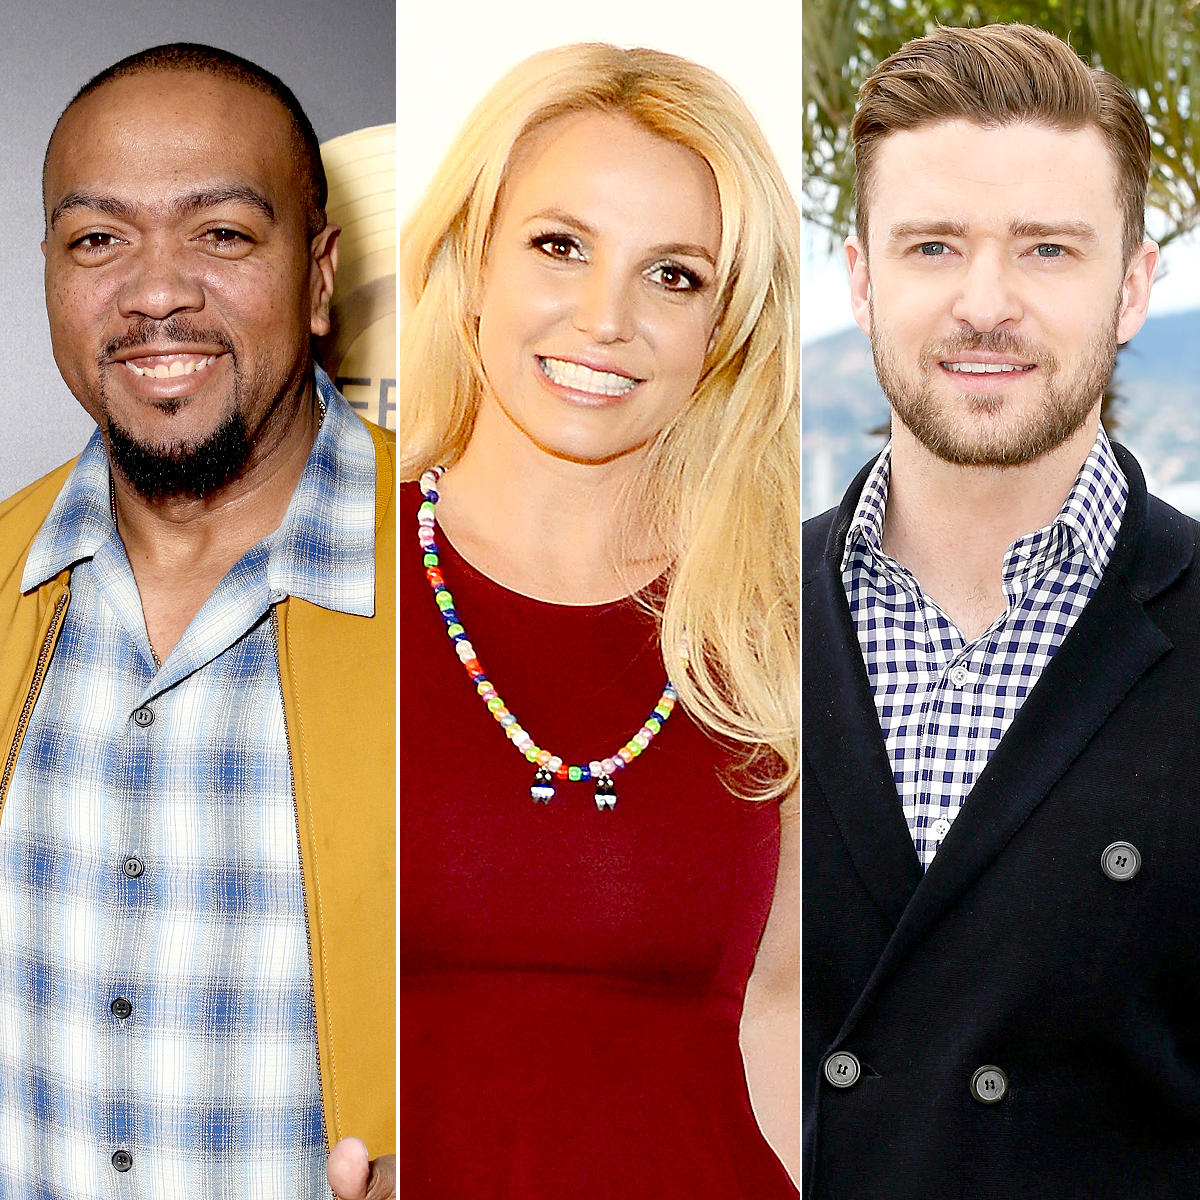 Timbaland, Britney Spears, and Justin Timberlake